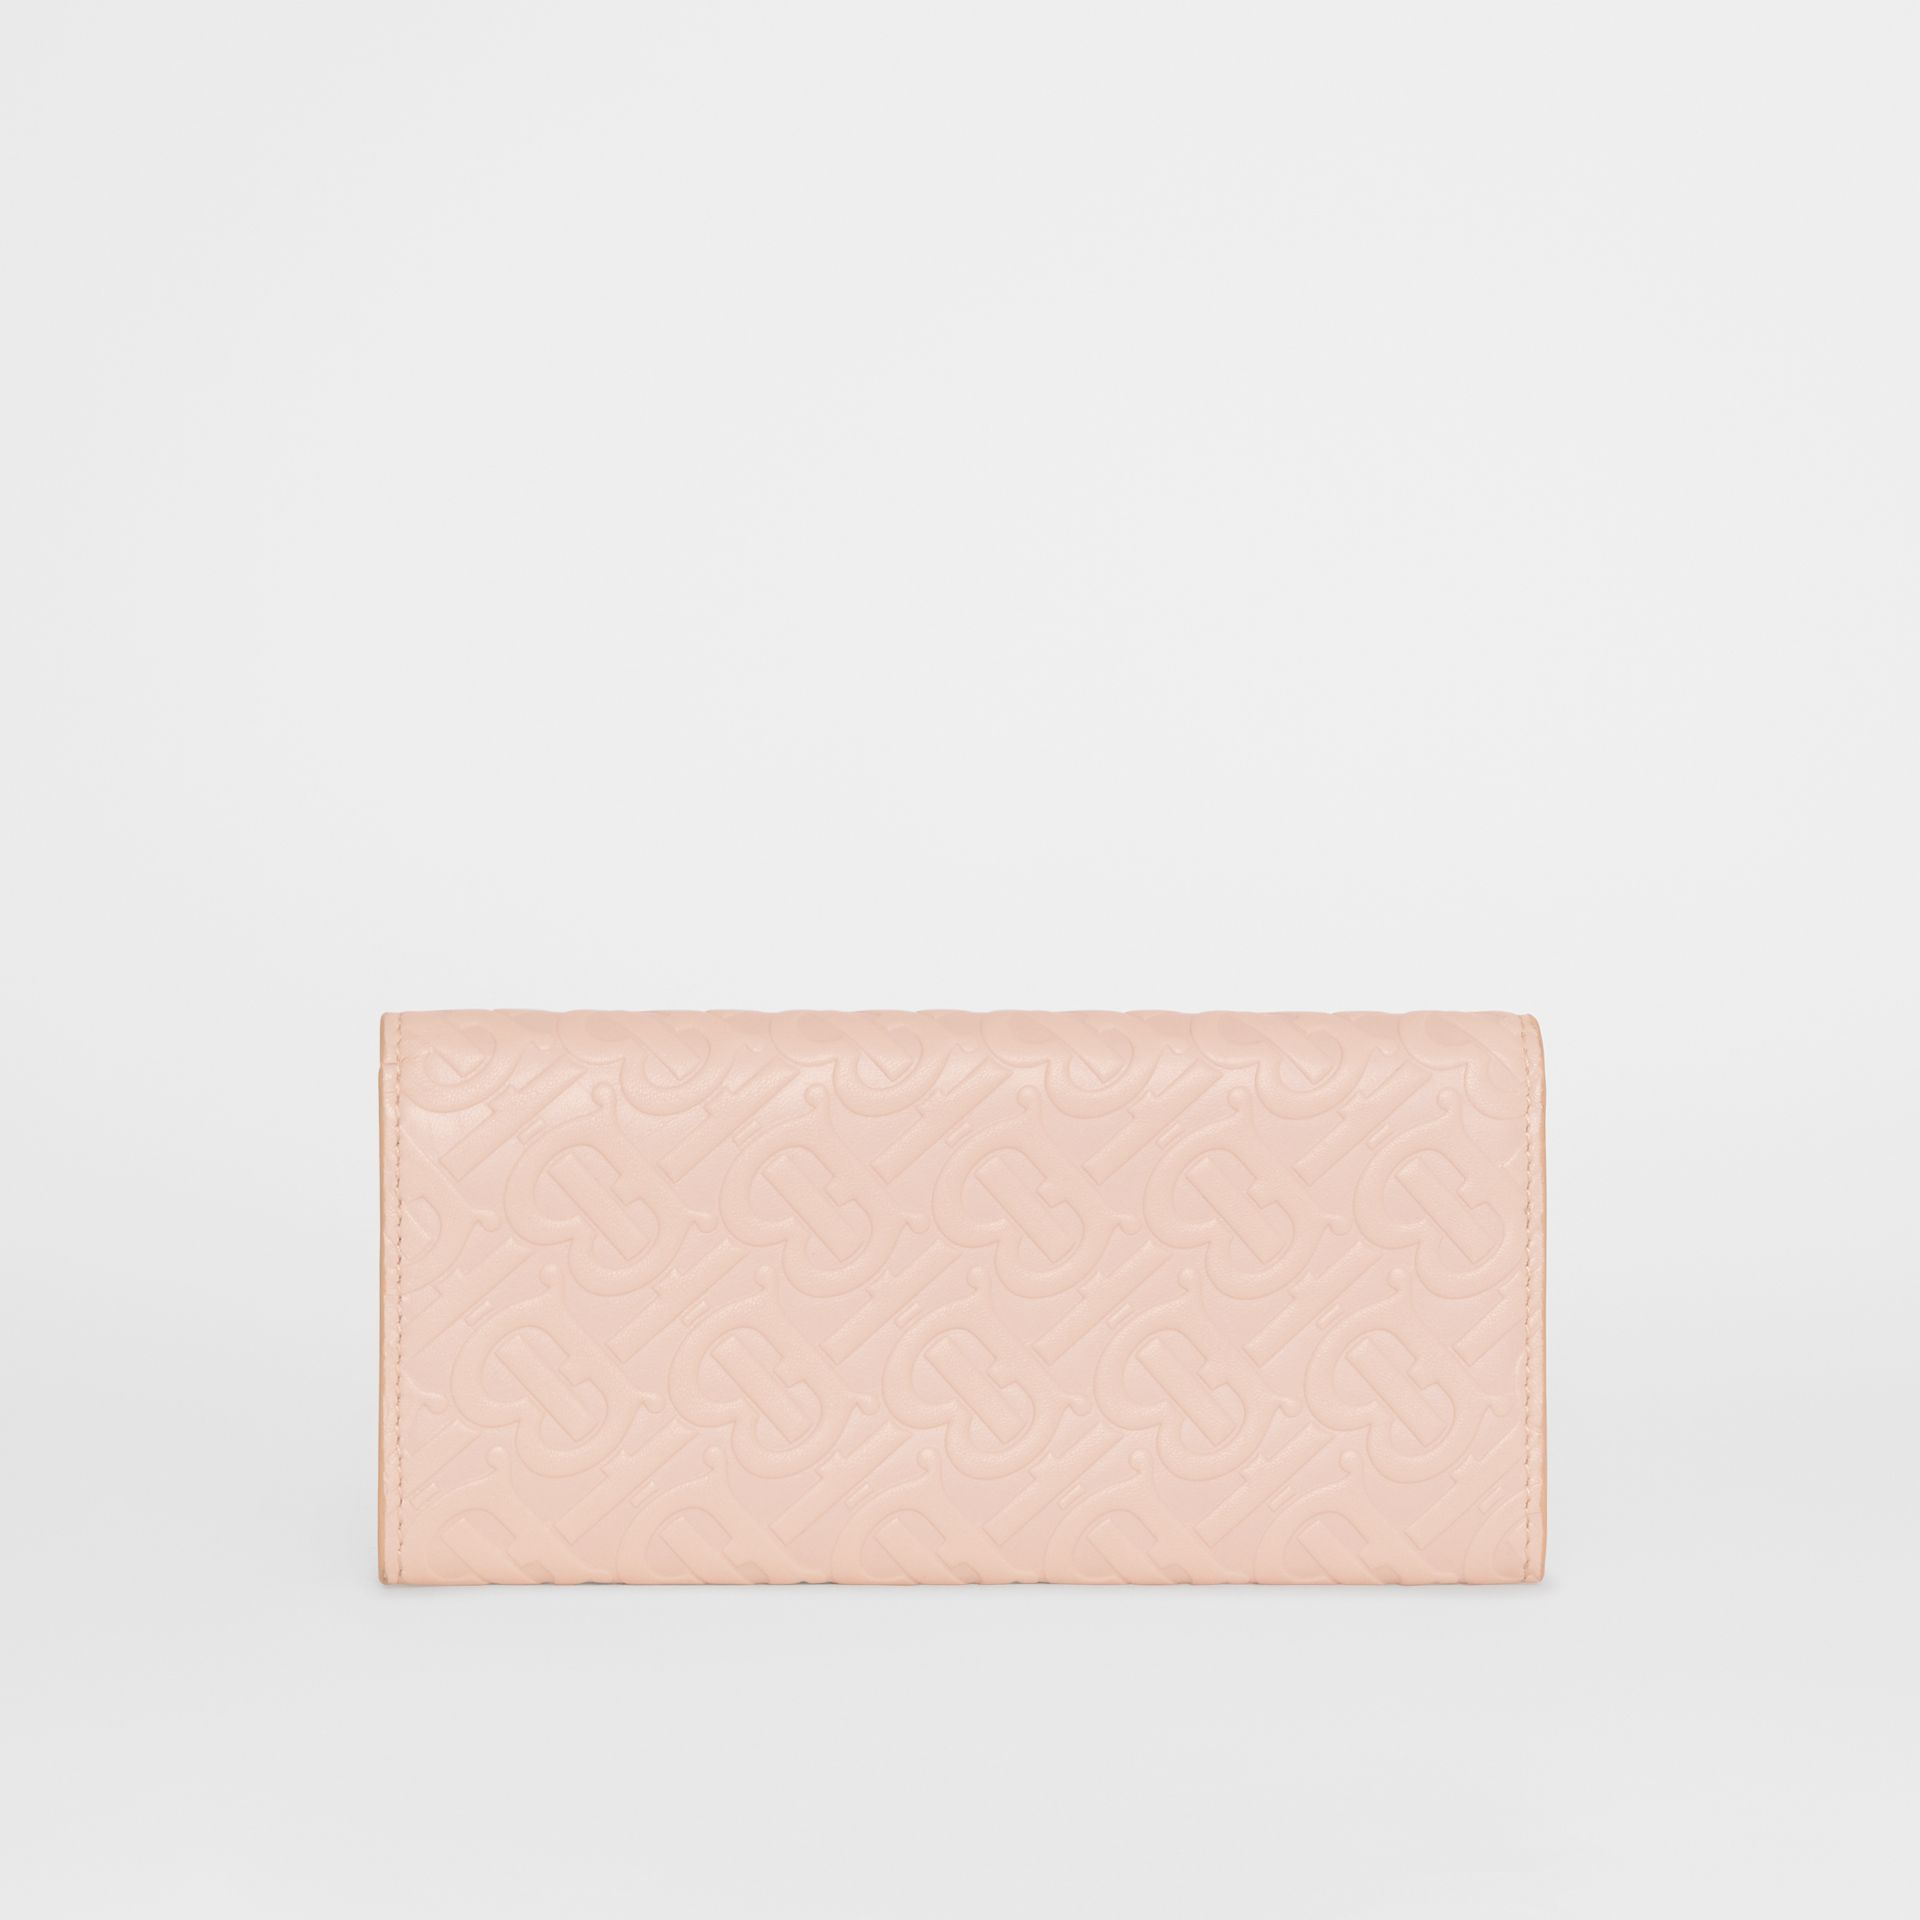 Monogram Leather Continental Wallet in Rose Beige - Women | Burberry Canada - gallery image 5